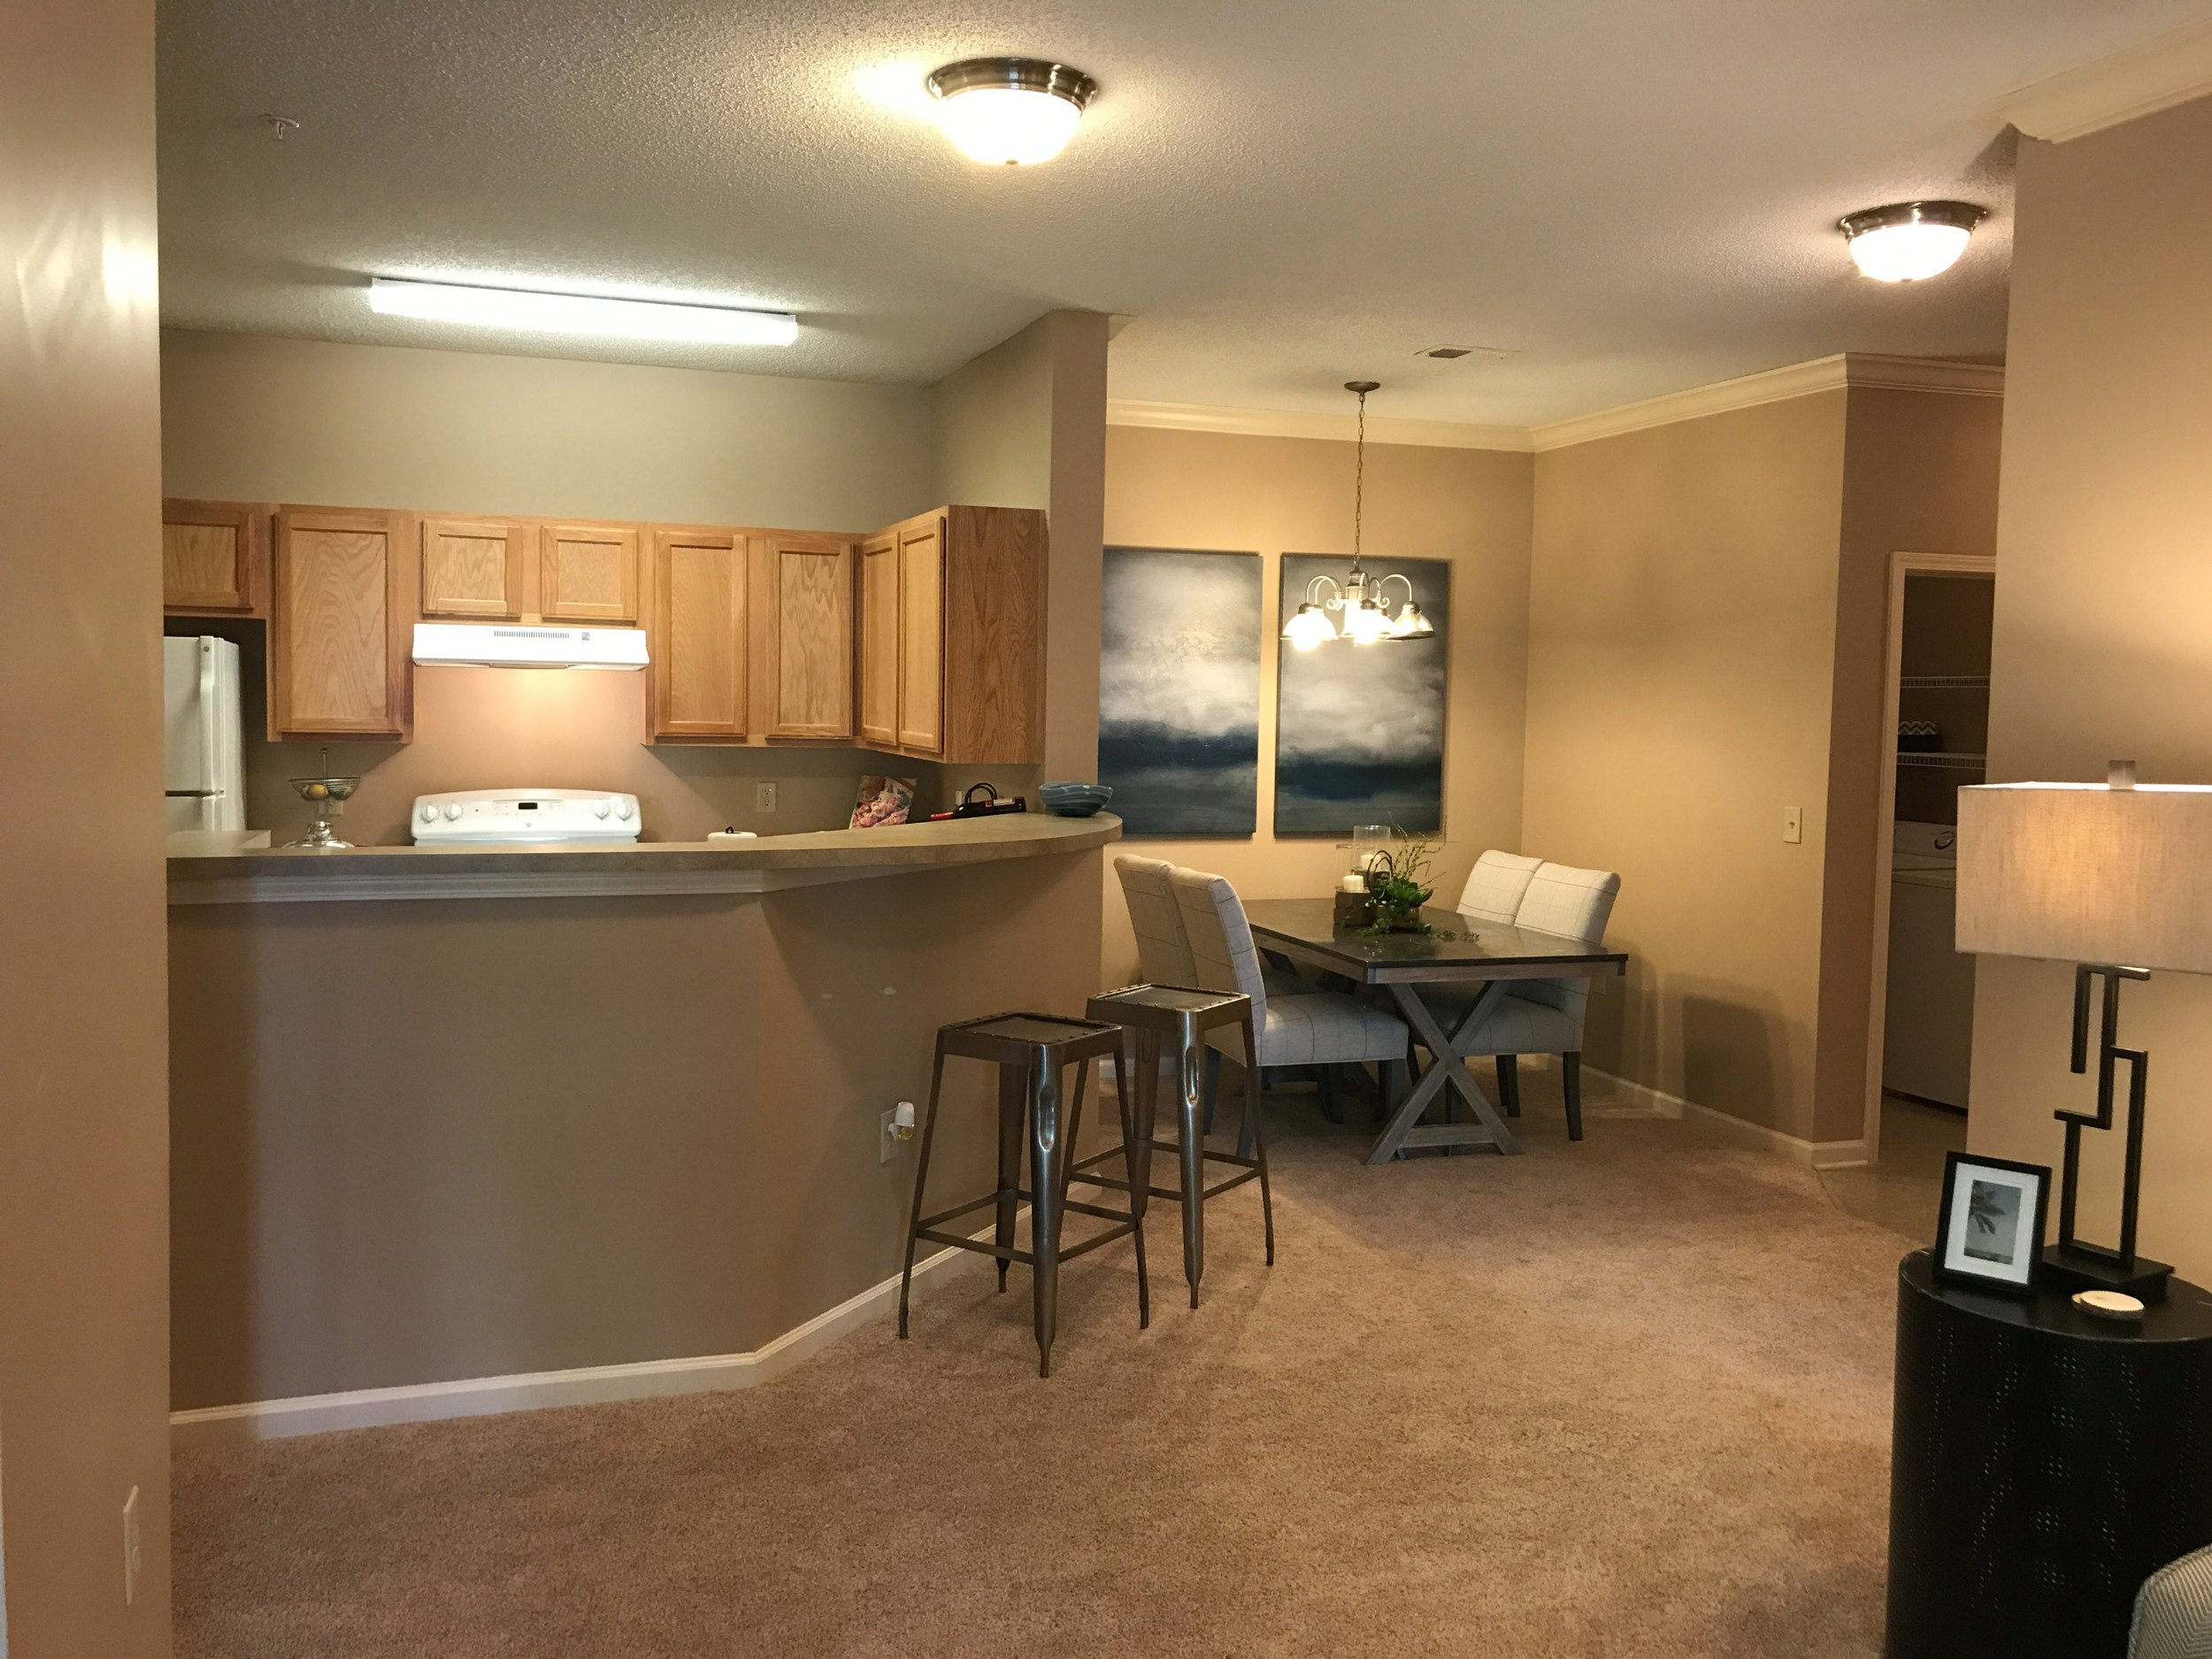 Columbia sc apartments for rent polo village - 2 bedroom apartments columbia sc ...